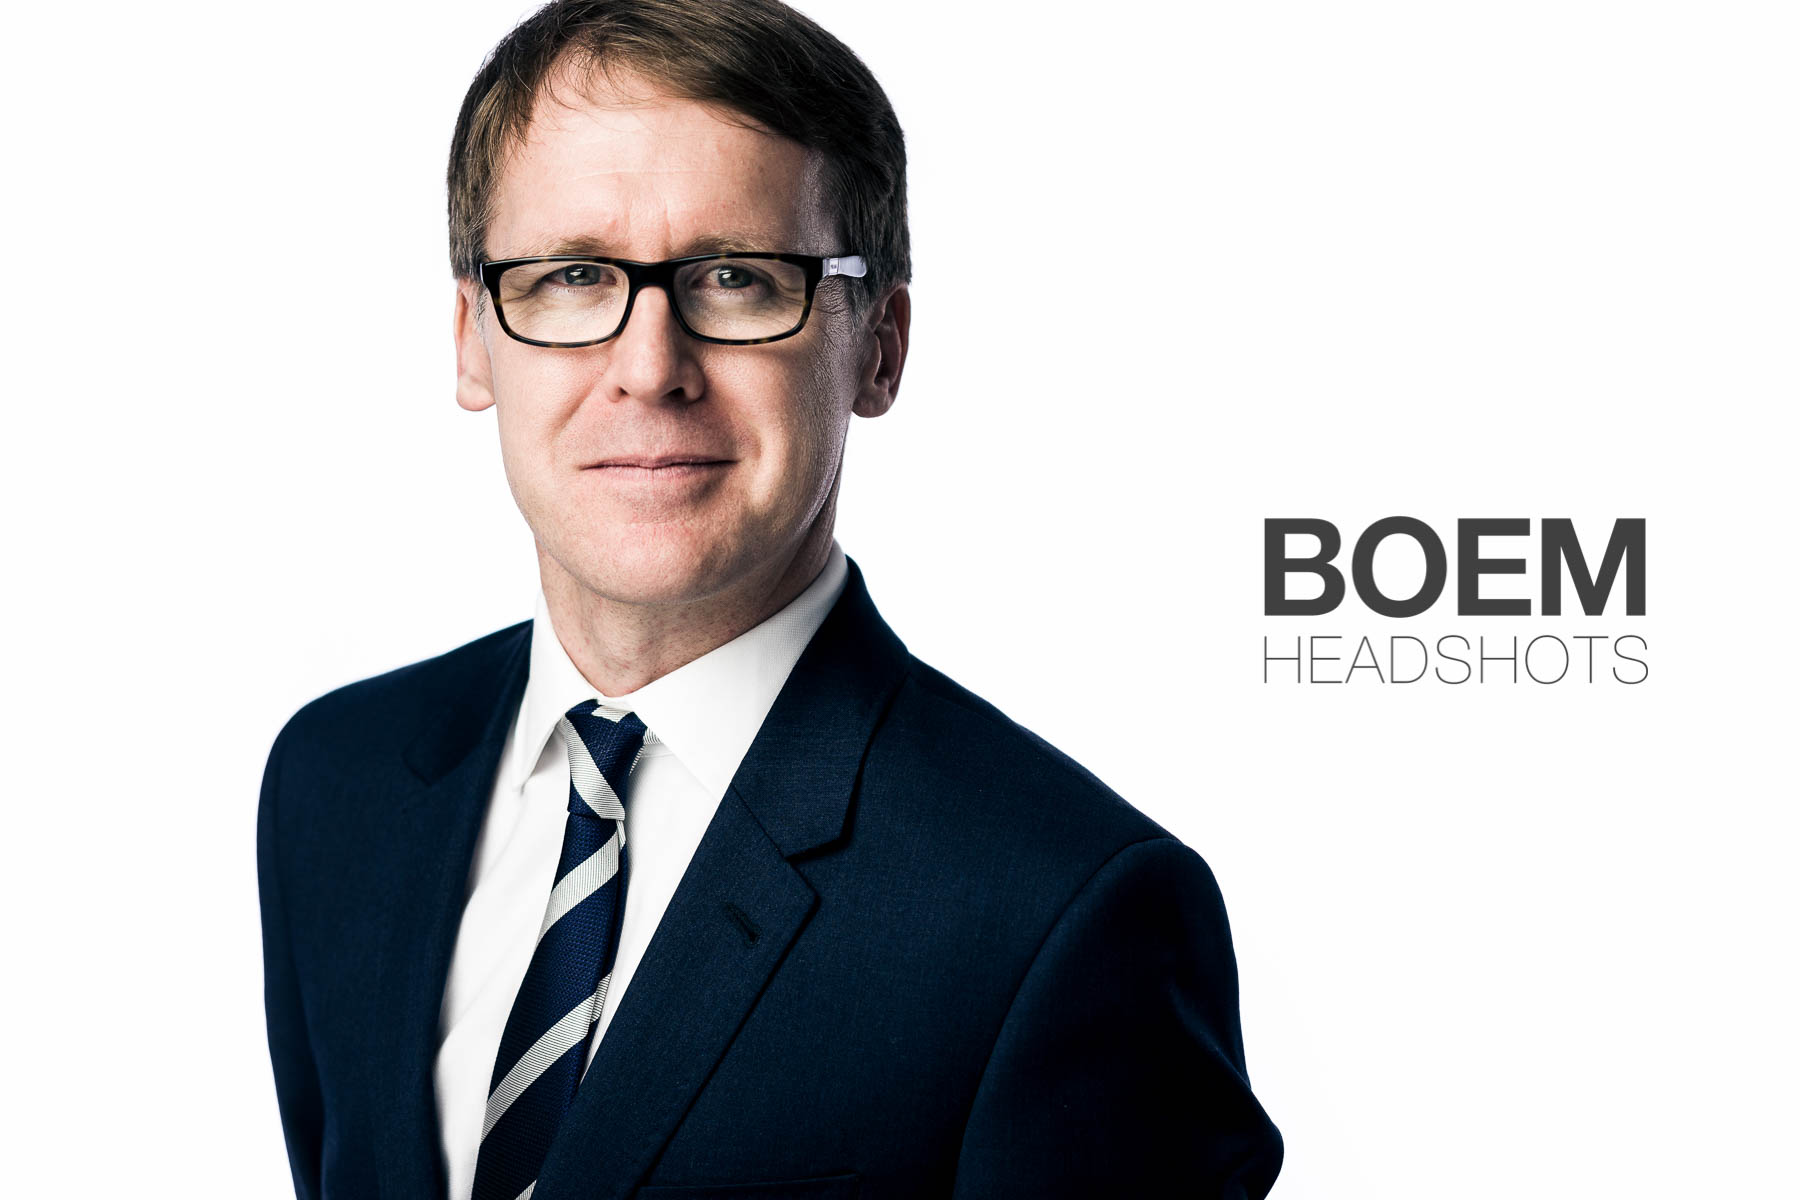 Andrew is an Adelaide based professional who needed a few new headshots to build up his online and professional networks, we were thrilled to spend an hour with him shooting his new corporate brand.